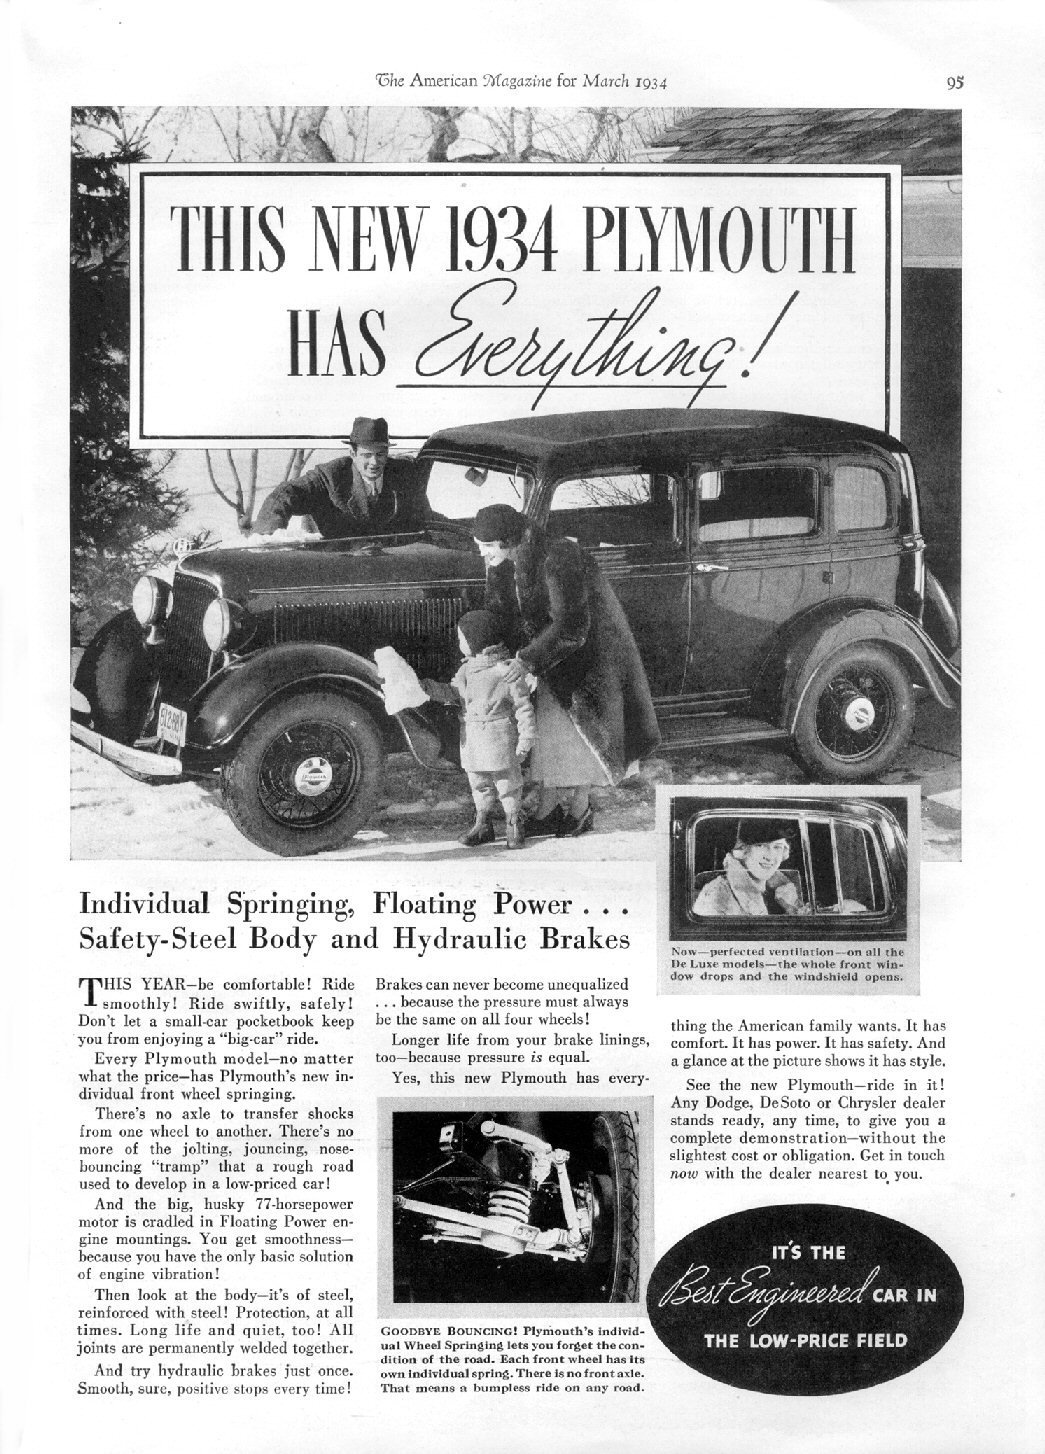 Directory Index: Plymouth/1934 Plymouth